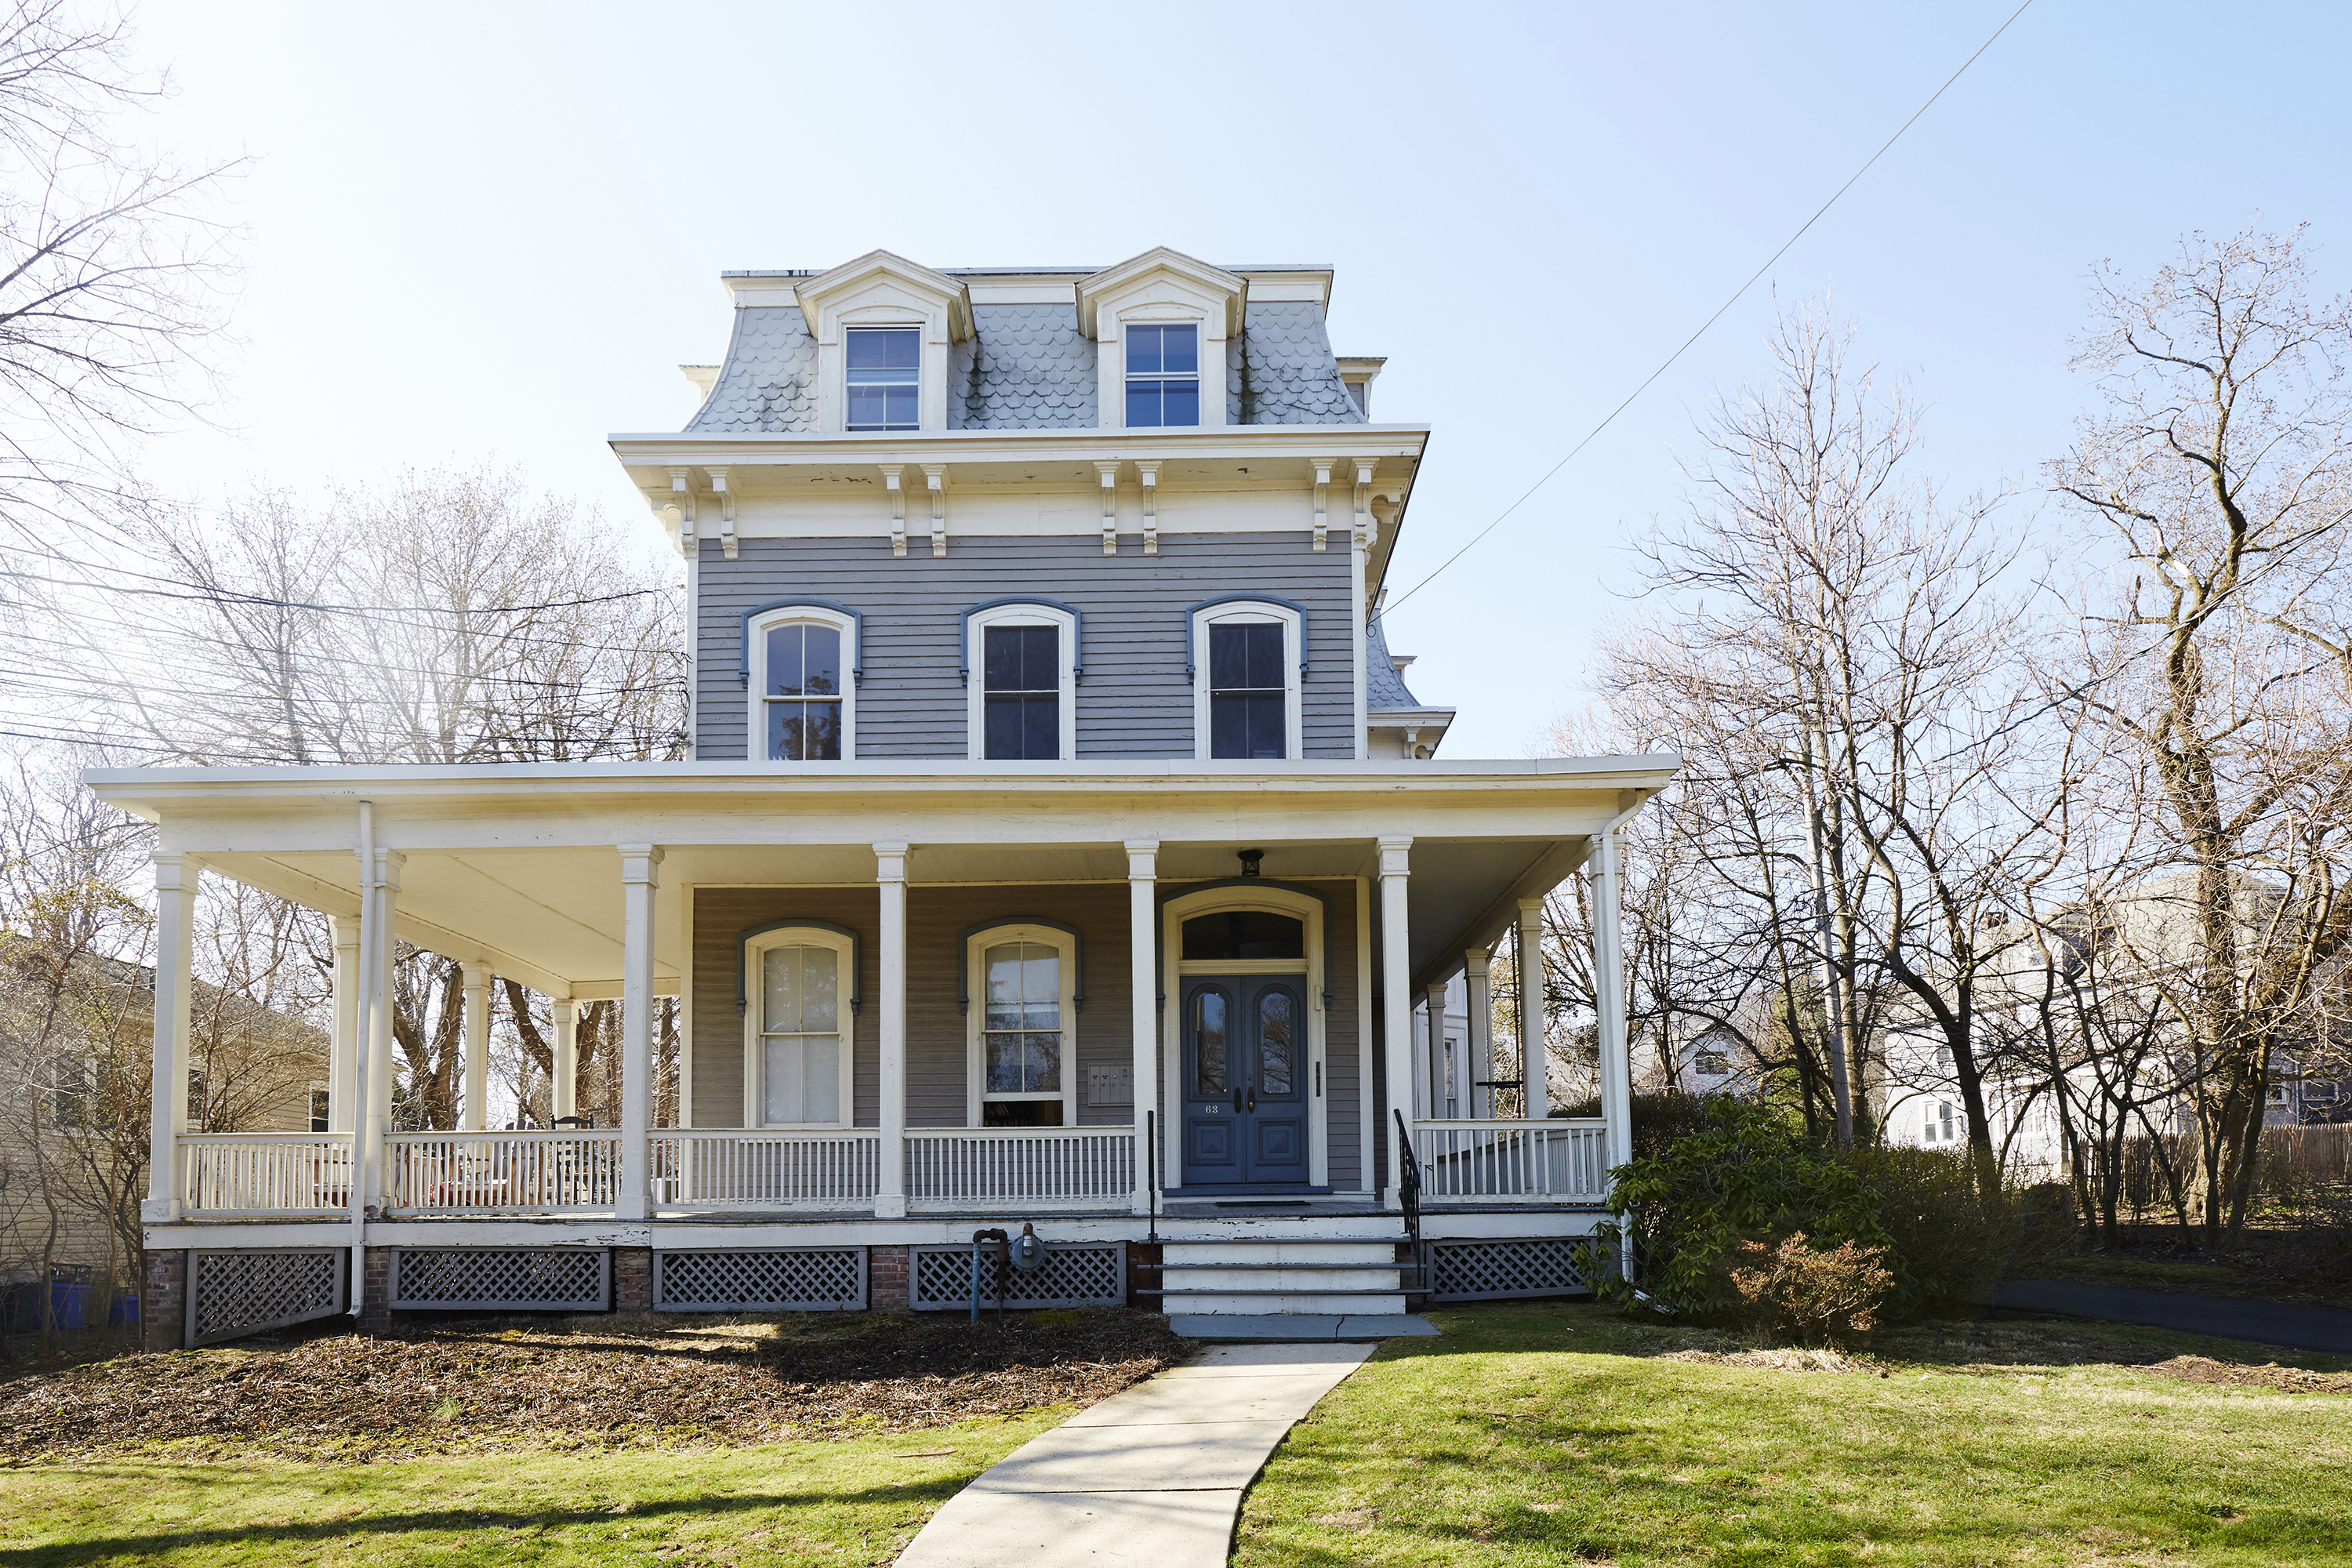 A three story, Victorian style home. The ground floor has a wrap around large porch, the home is painted a light grey with a blue door and white trim.